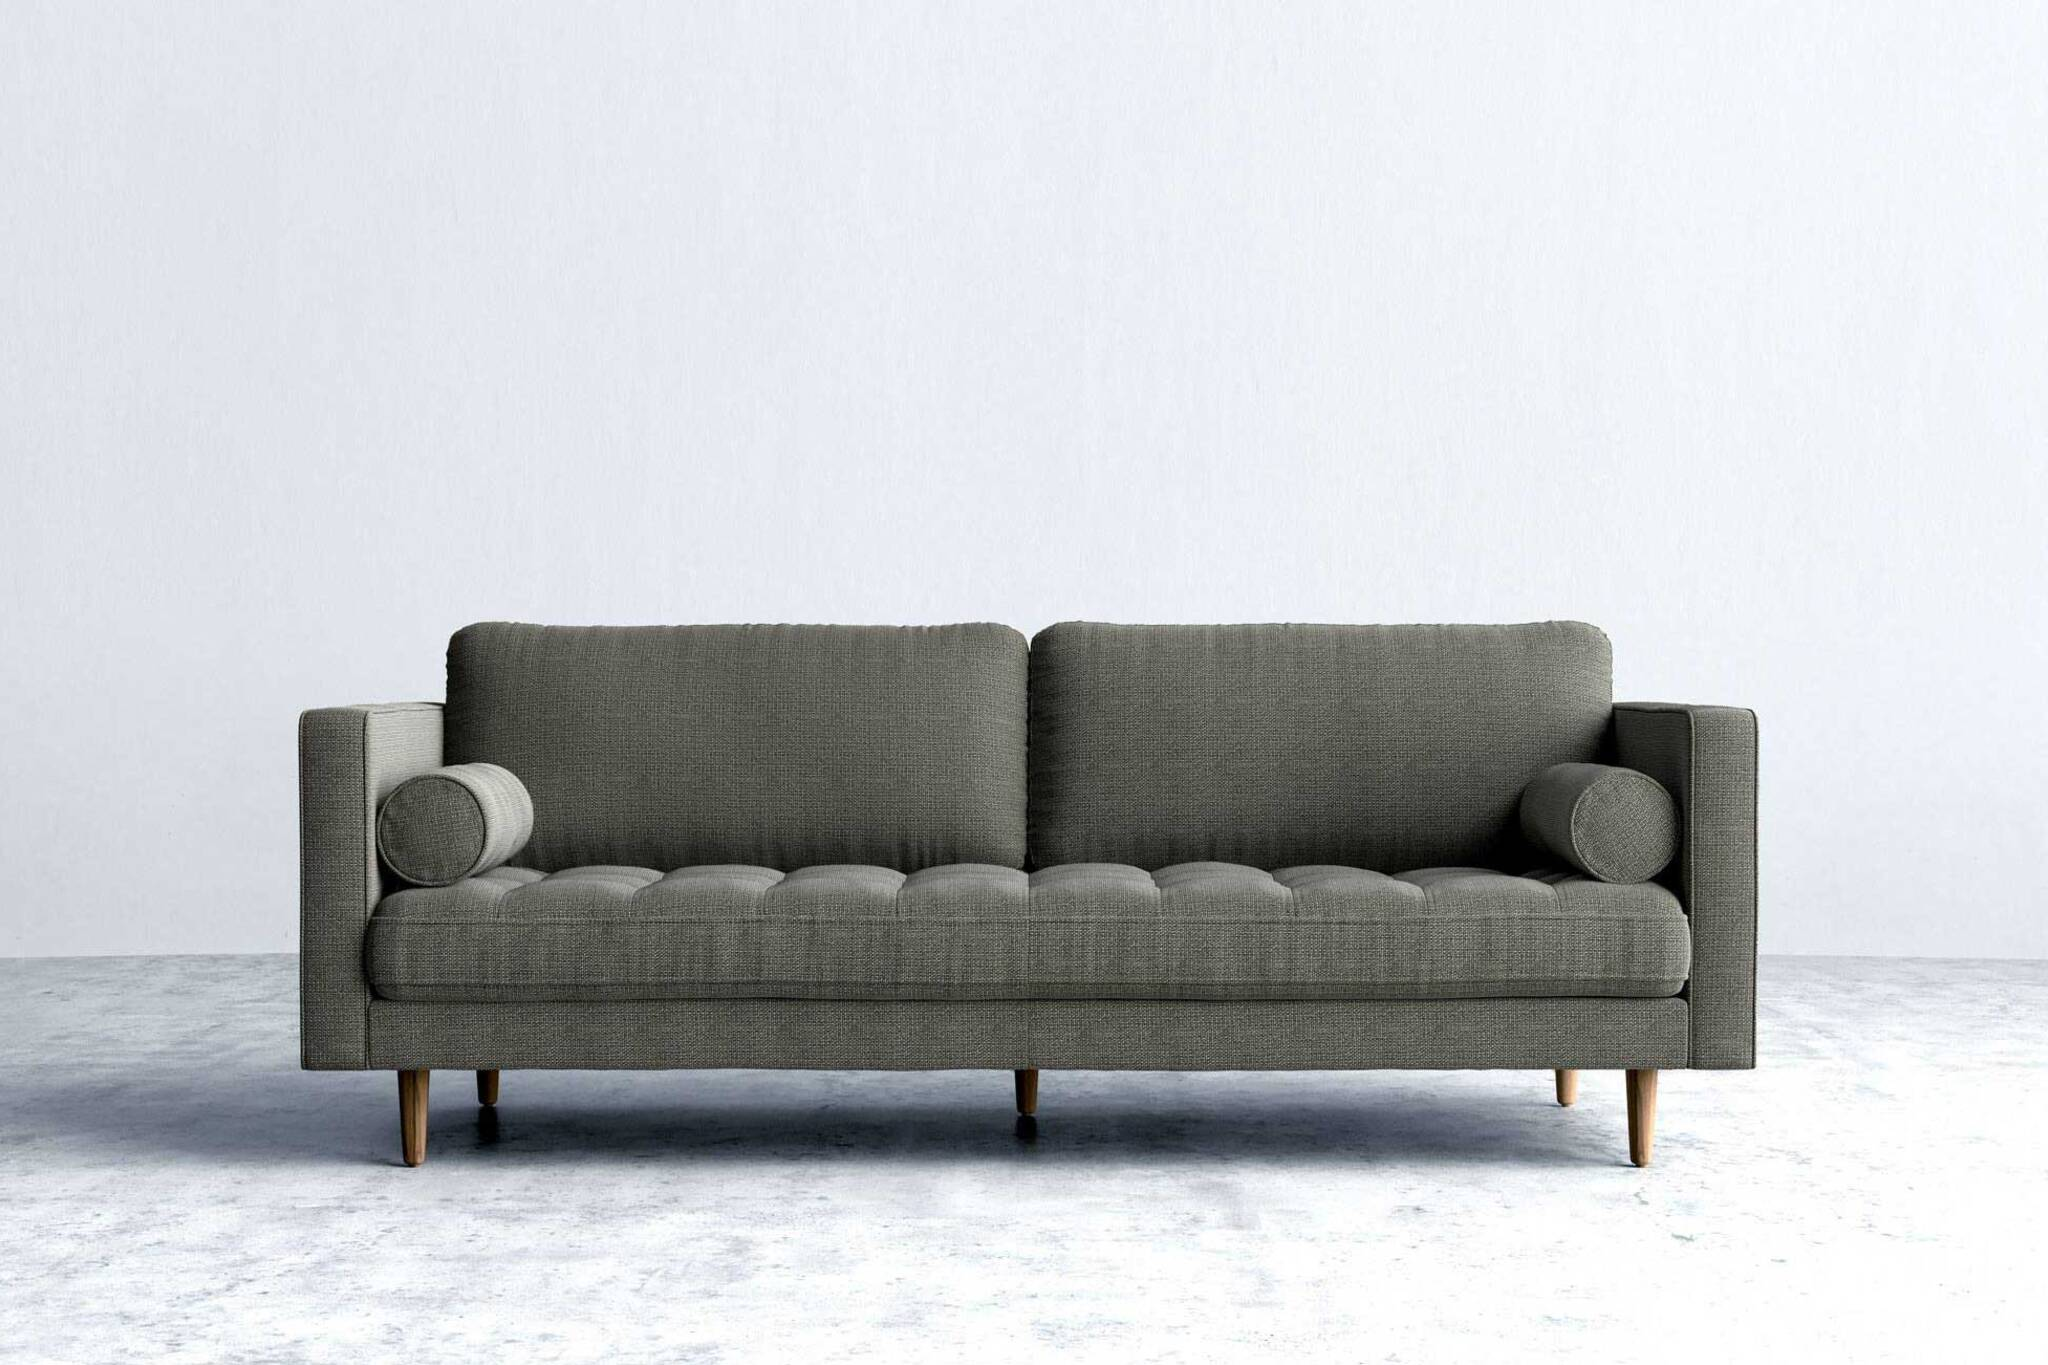 Best cheap sofas toronto sofa ideas for Best quality affordable furniture